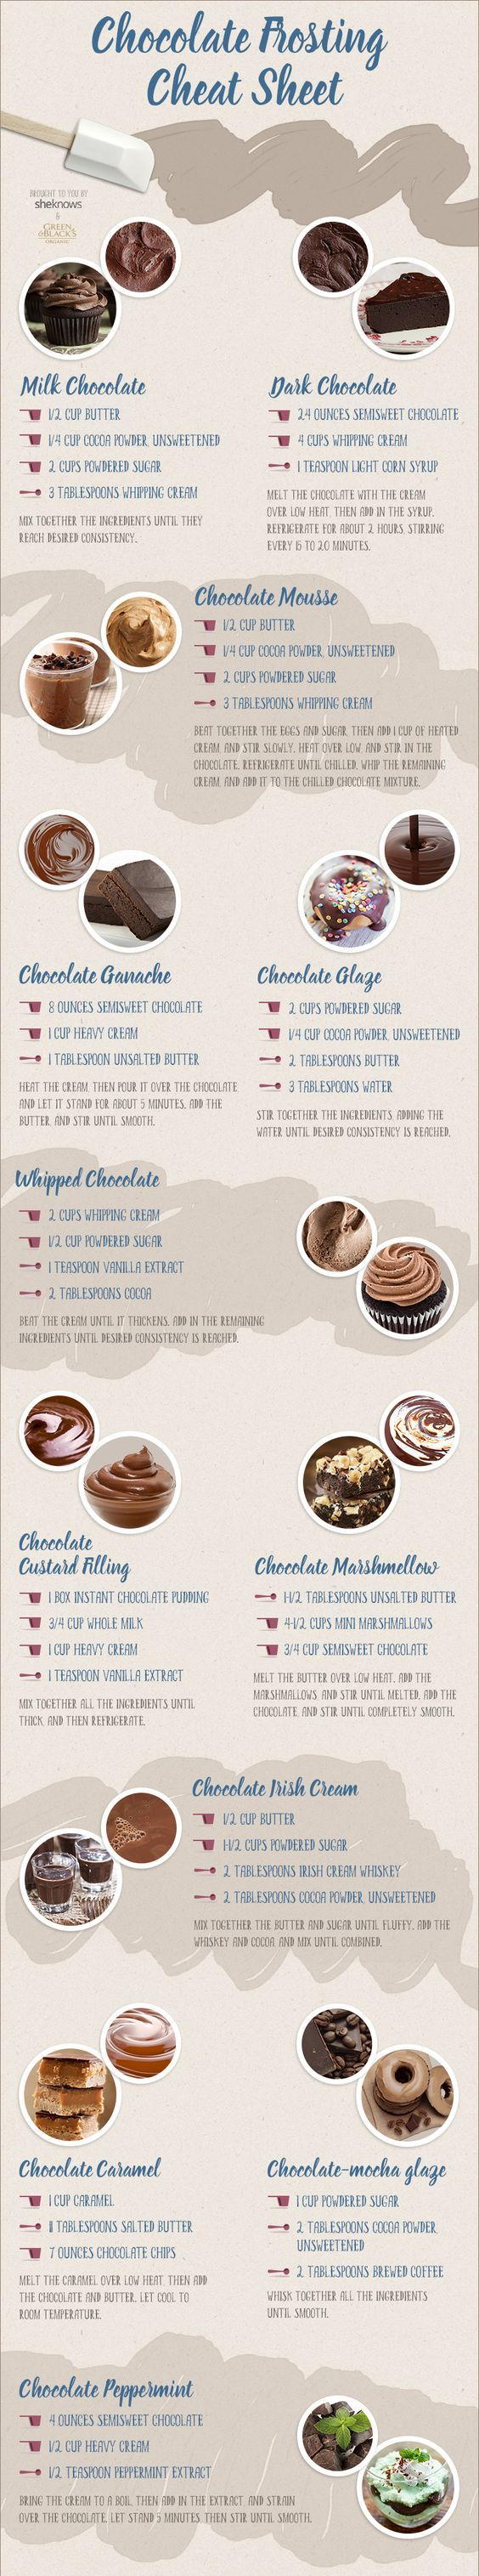 #Chocolate #Frosting Cheat Sheet [Infographic] > Large Version: http://www.thesurpriseeggshow.com/2016/07/chocolate-frosting-cheat-sheet-infographic.html